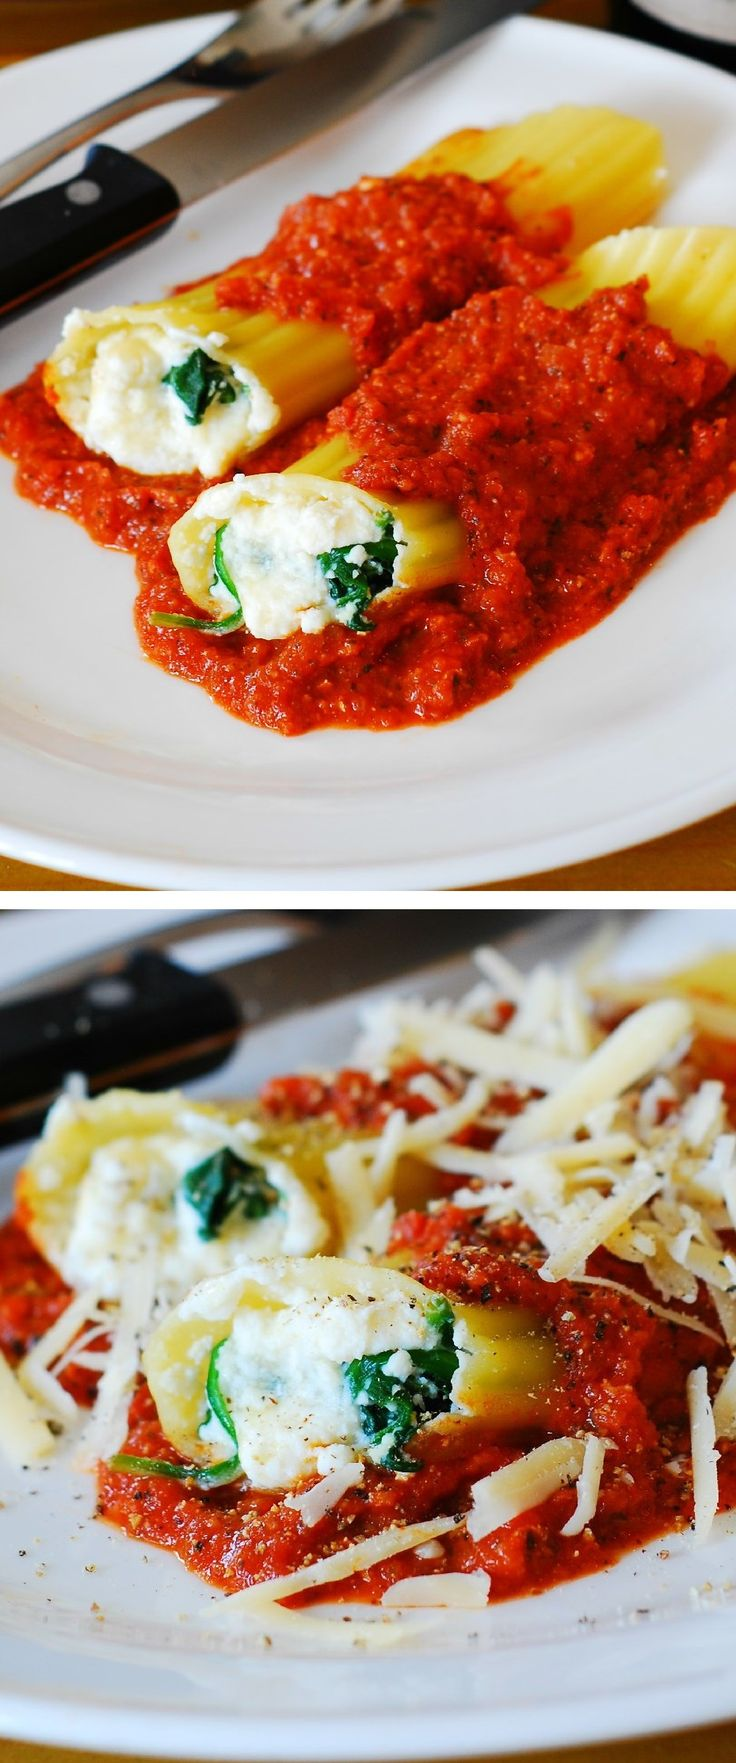 Stuffed Manicotti Pasta Shells with ricotta cheese and spinach filling in a homemade tomato sauce